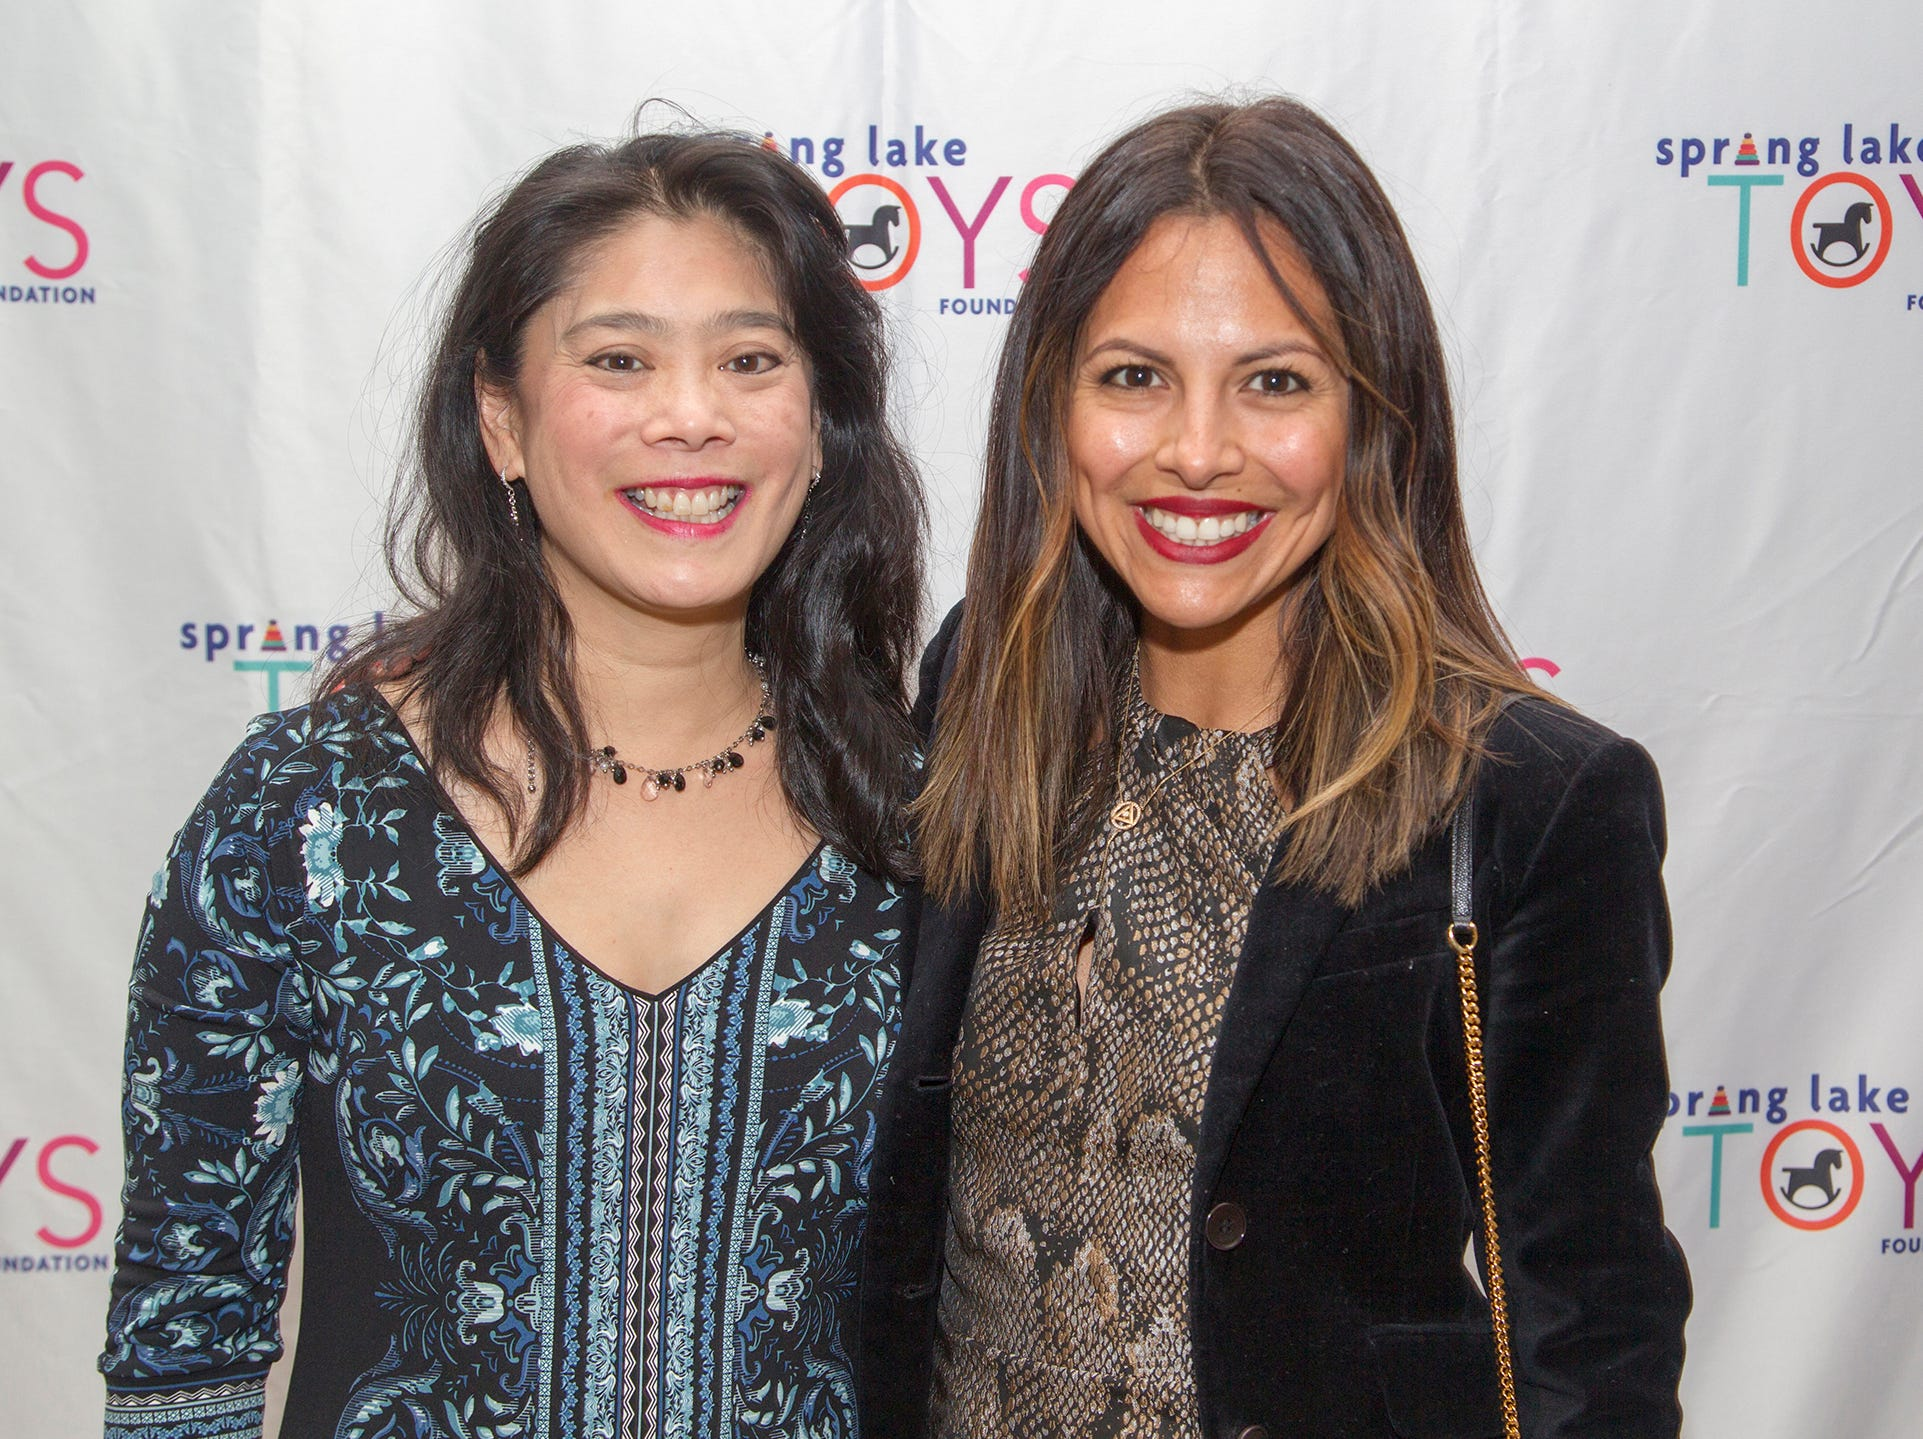 Kristine Carney, Mariel Alvarado. Spring Lake Toys Foundation held its 3rd annual fundraising gala luncheon at Indian Trail Club in Franklin Lakes. The luncheon fundraiser raises funds for children with illnesses. 10/18/2018